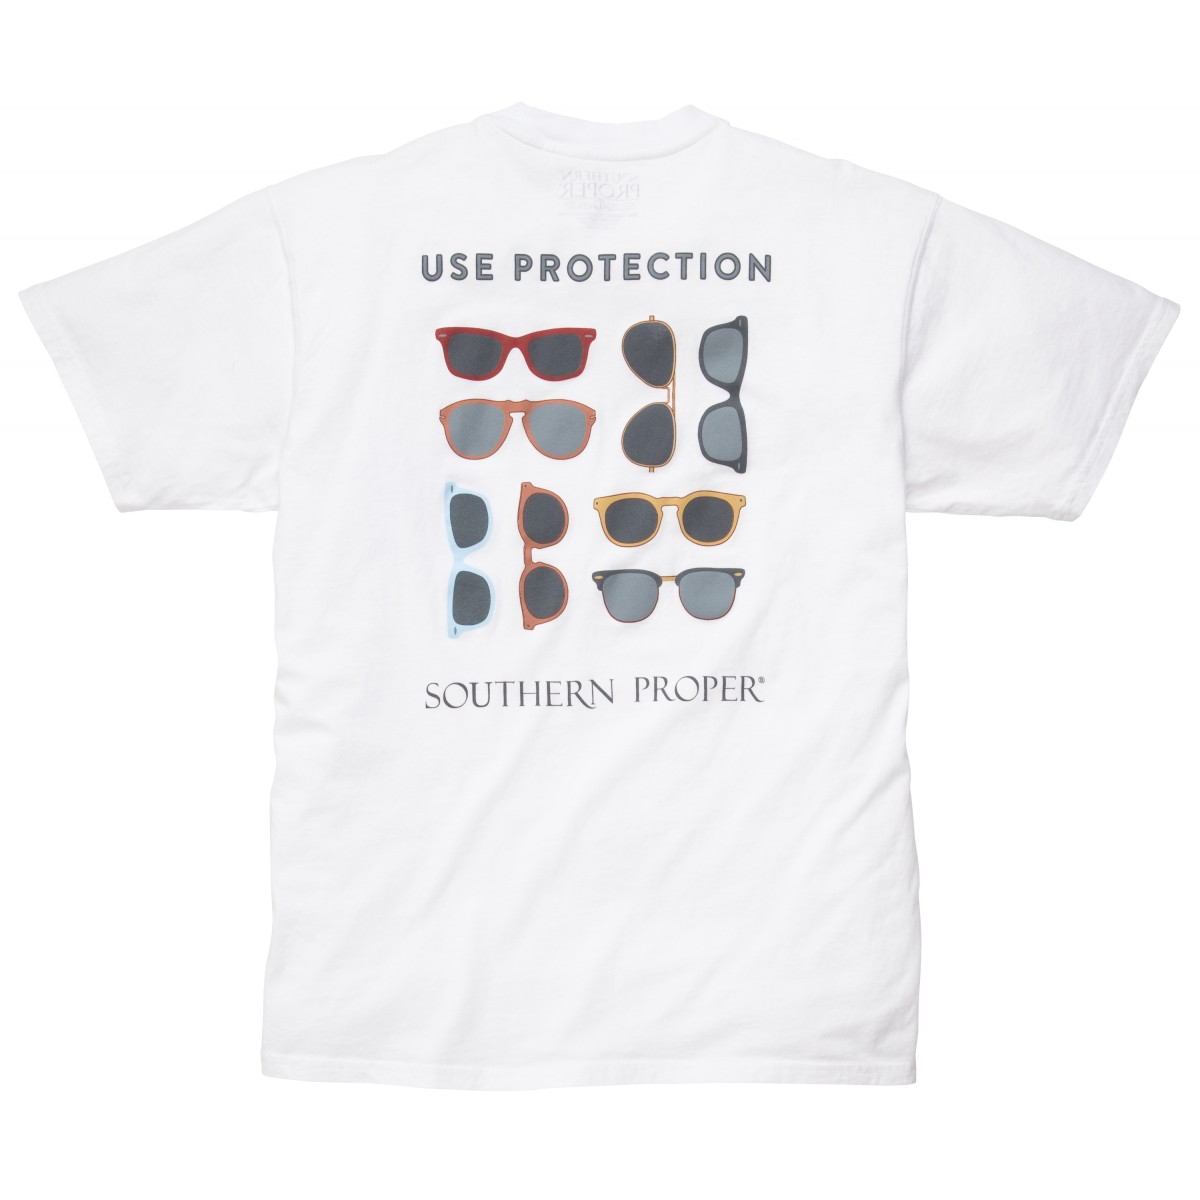 Use Protection Tee: White